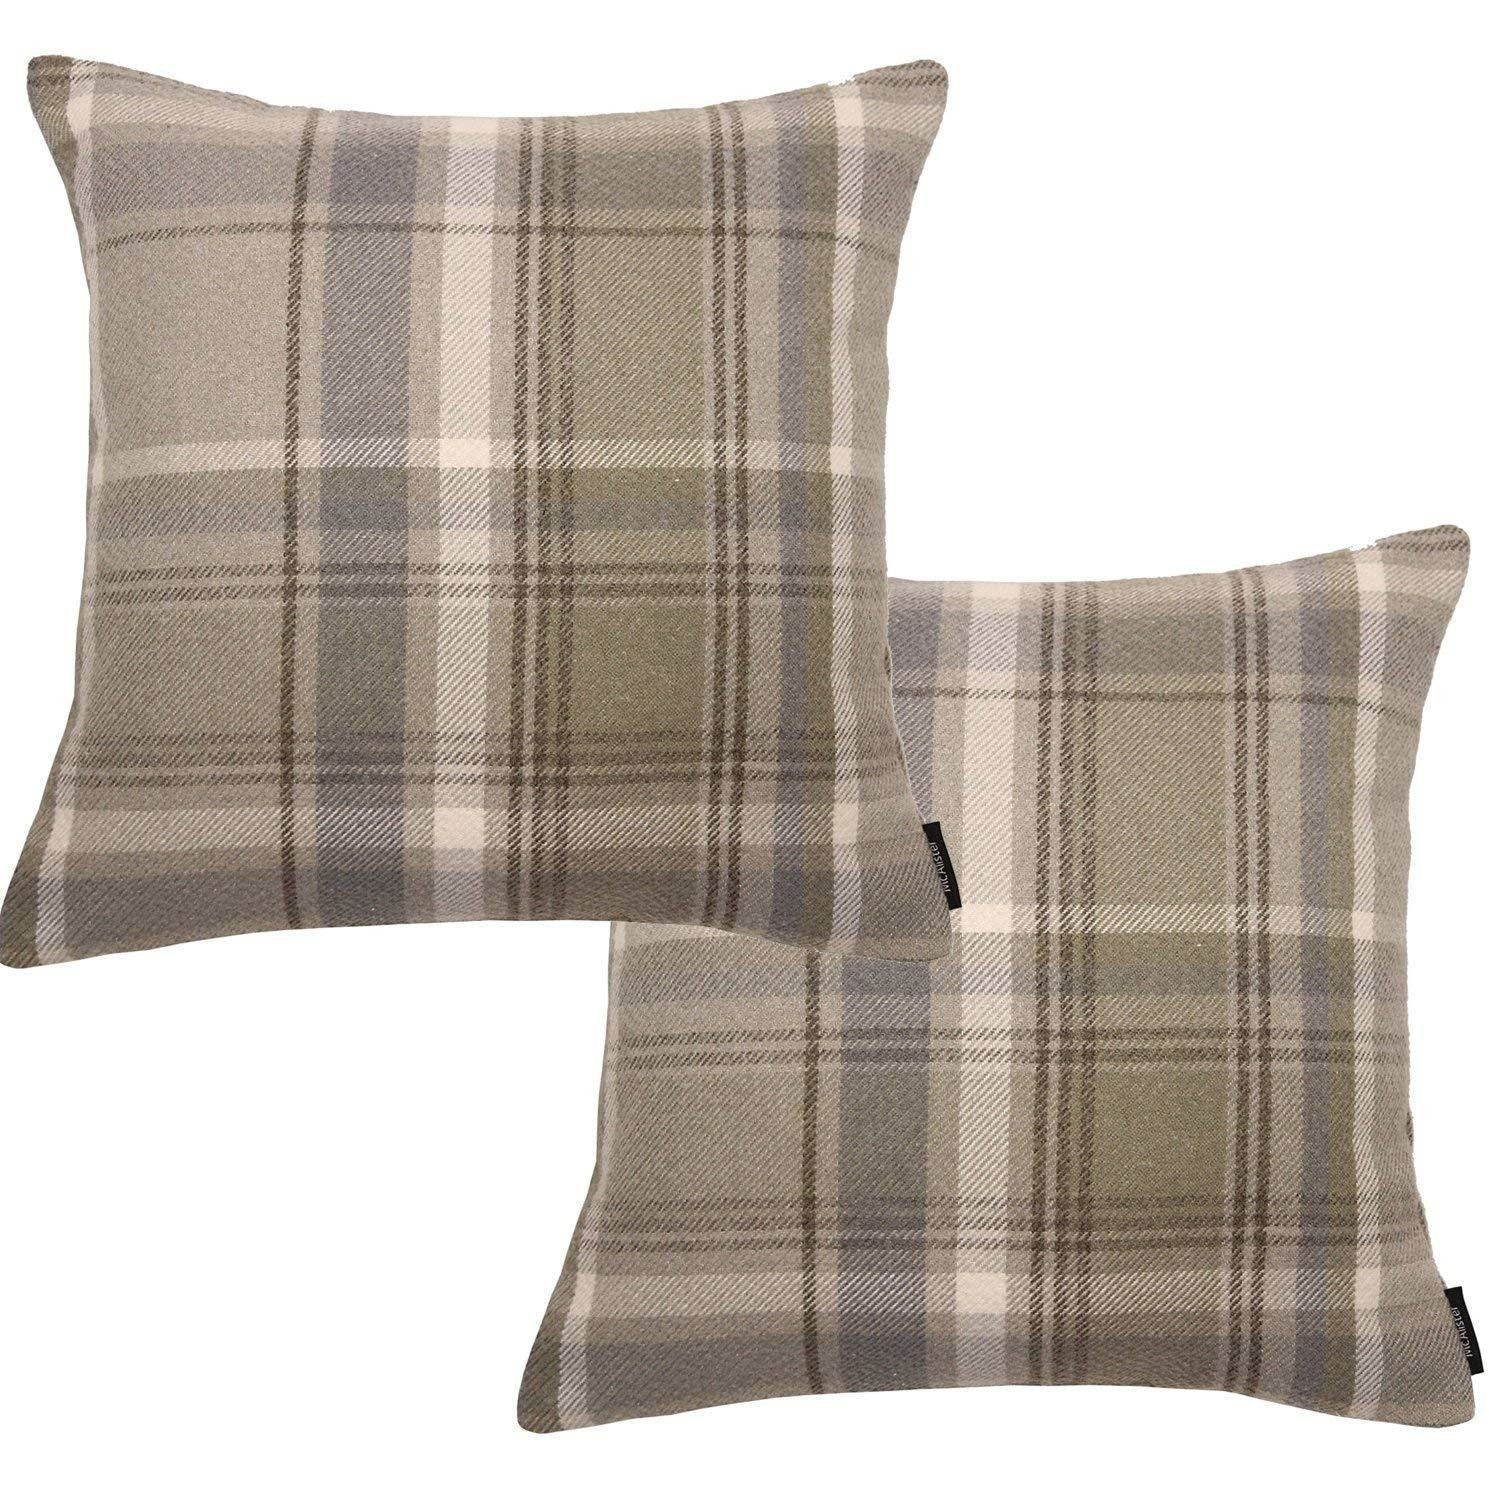 McAlister Textiles Heritage Beige Cream Tartan 43cm x 43cm Cushion Sets Cushions and Covers Cushion Covers Set of 2